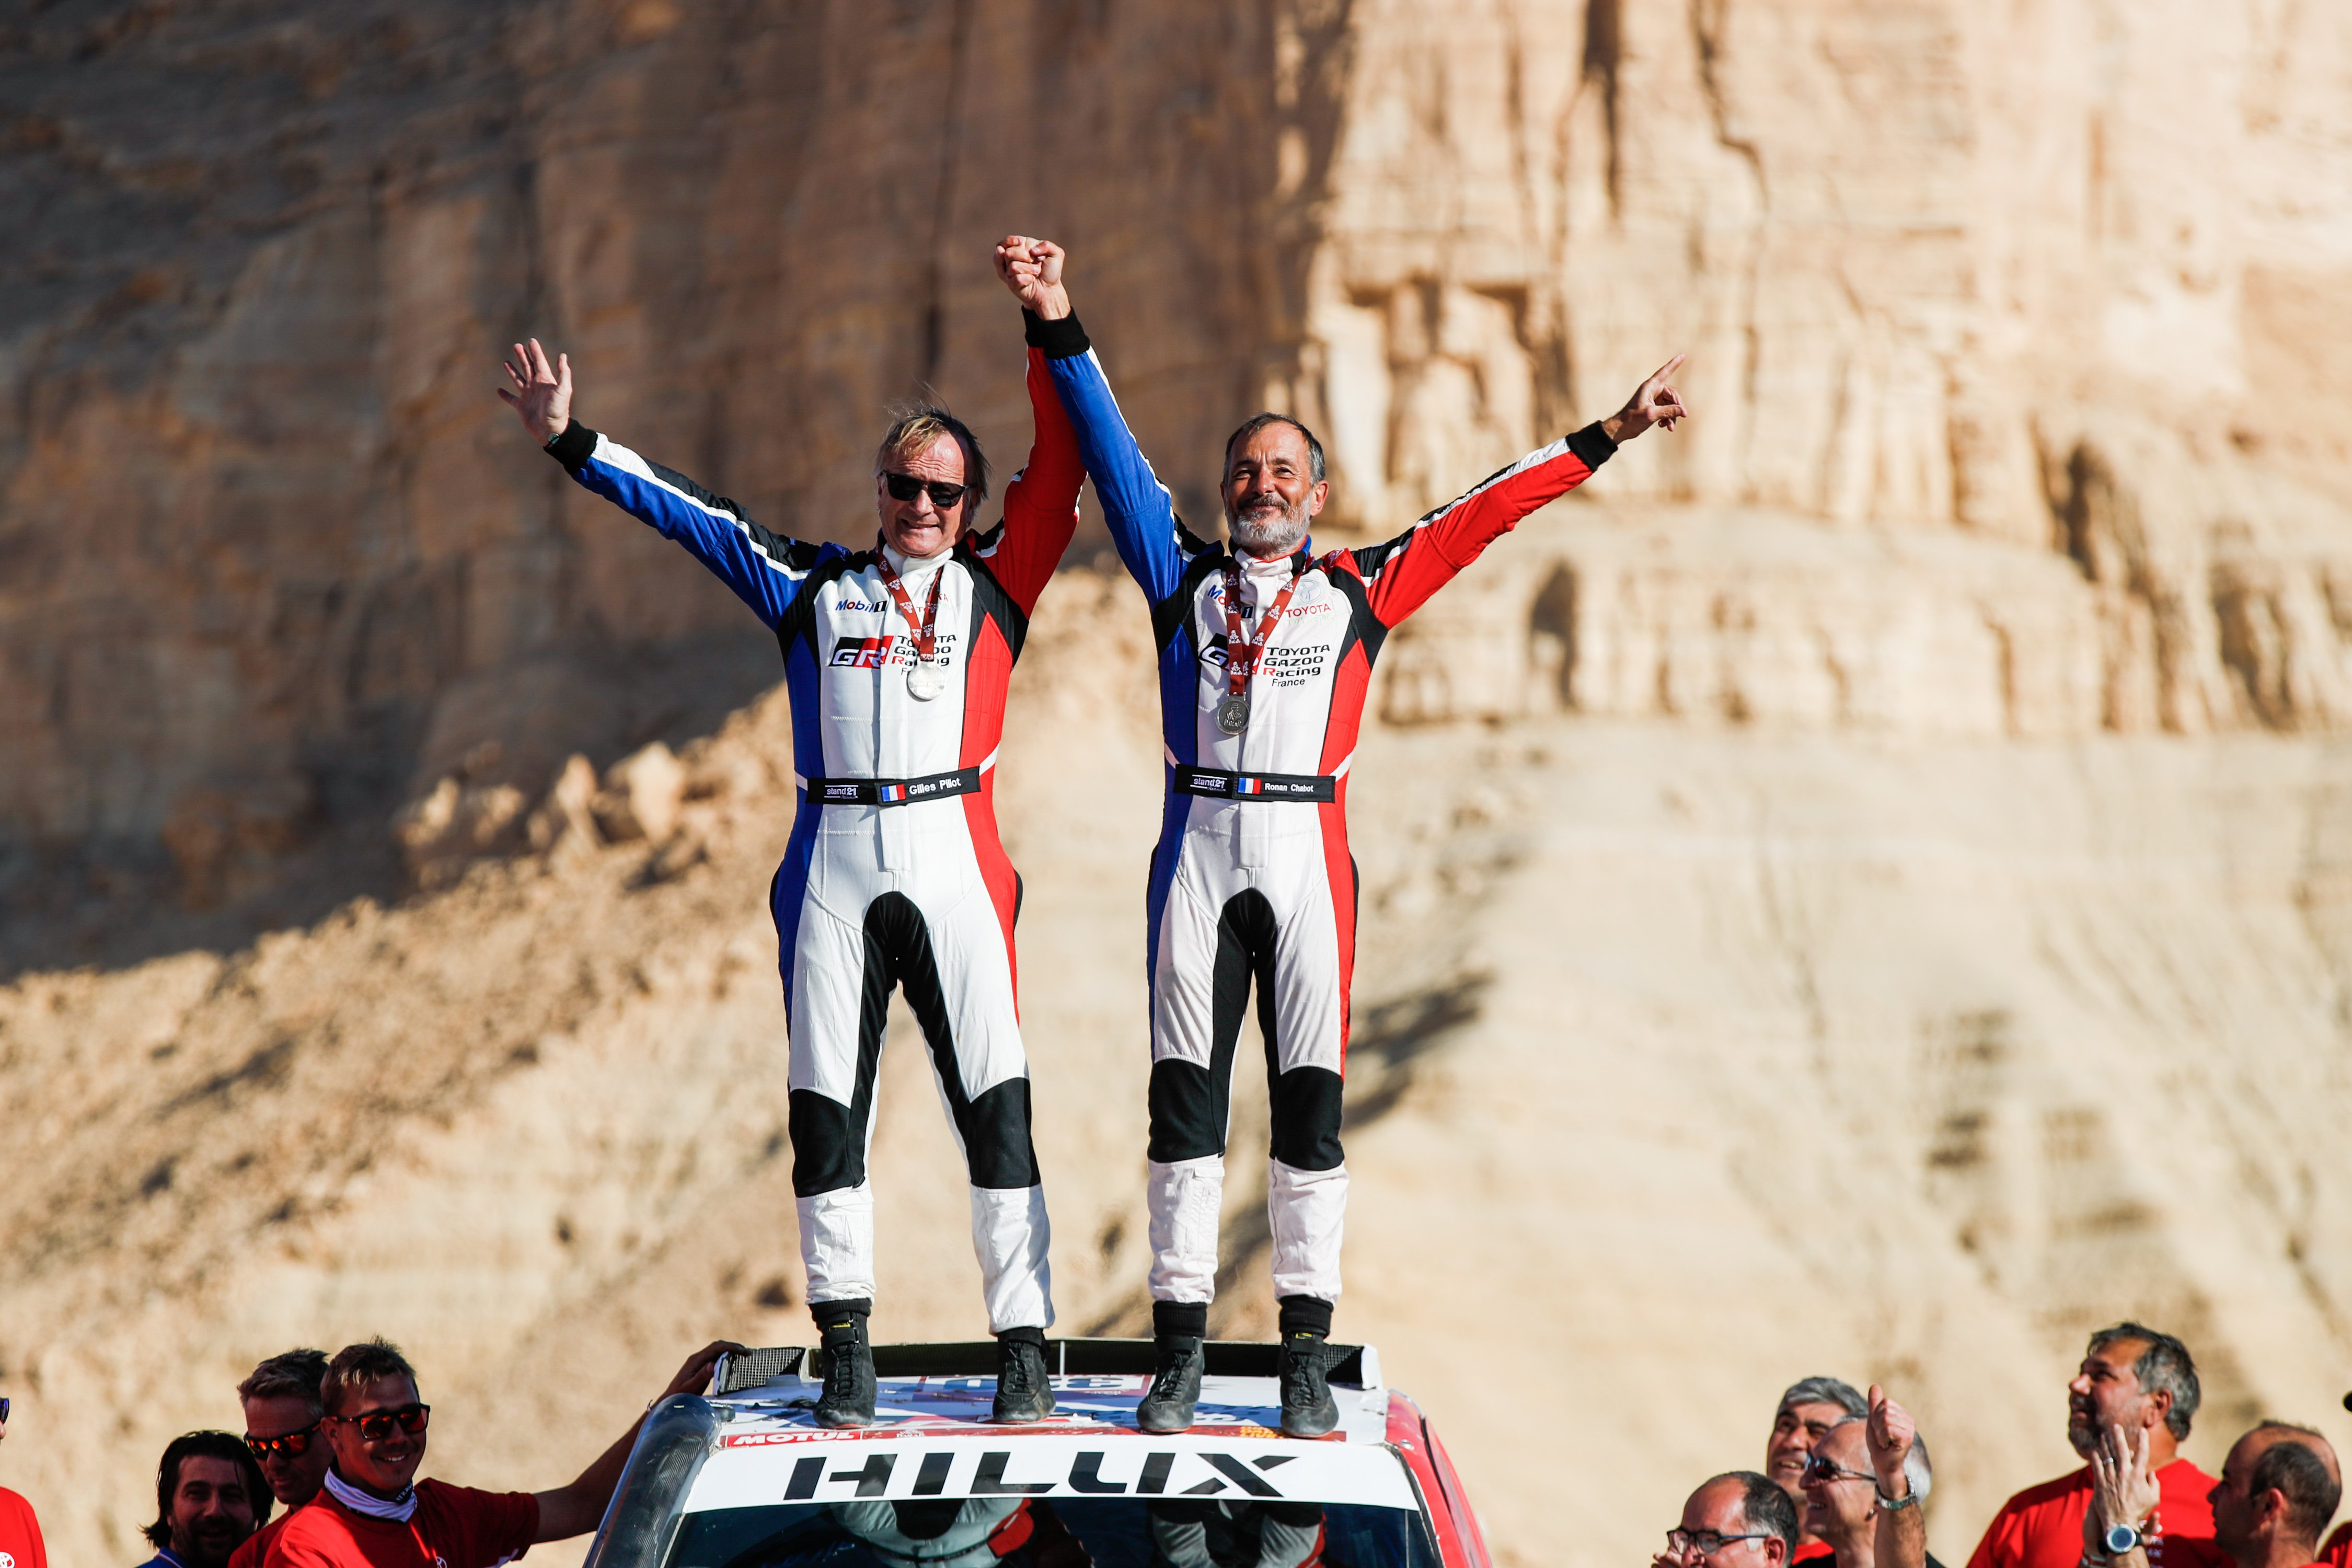 320 Chabot Ronan (fra), Pillot Gilles (fra), Toyota Hilux, Overdrive Toyota, Auto, Car, ambiance on the podium at the arrival of the Dakar 2020, in Qiddiya, Saudi Arabia, on January 17, 2020 - Photo Florent Gooden / DPPI